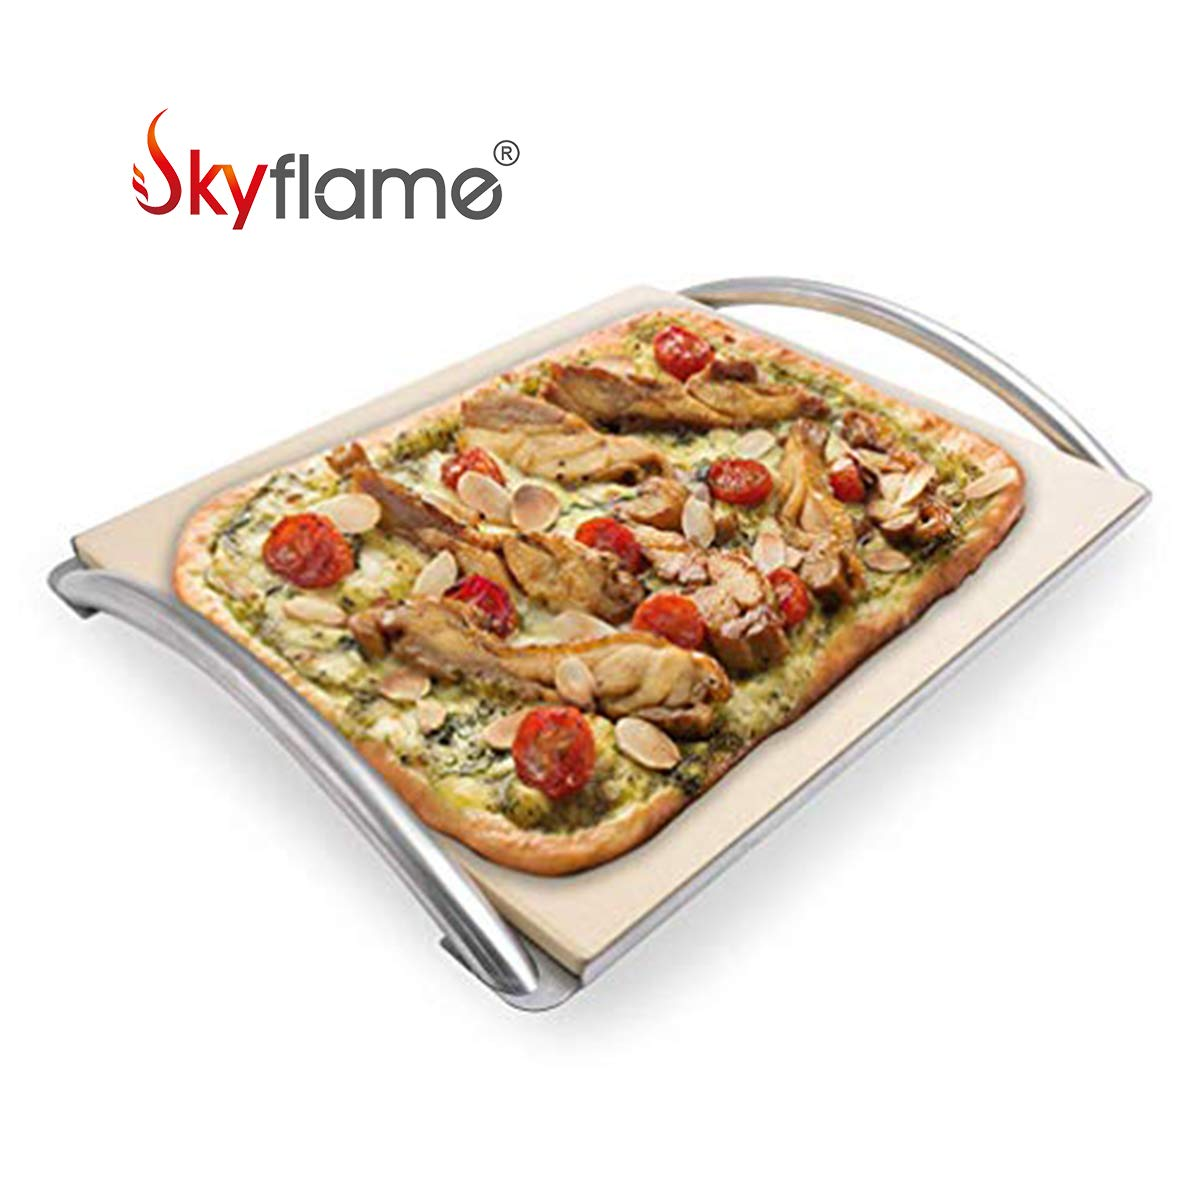 Skyflame 14'' x 16'' Rectangle Ceramic Baking Pizza Stone with Metal Handle Rack Fits Most Charcoal Grills, Gas Grills, Pizza Oven, Pellet Grills, BGE, Kamado Grills, Smoker by Skyflame